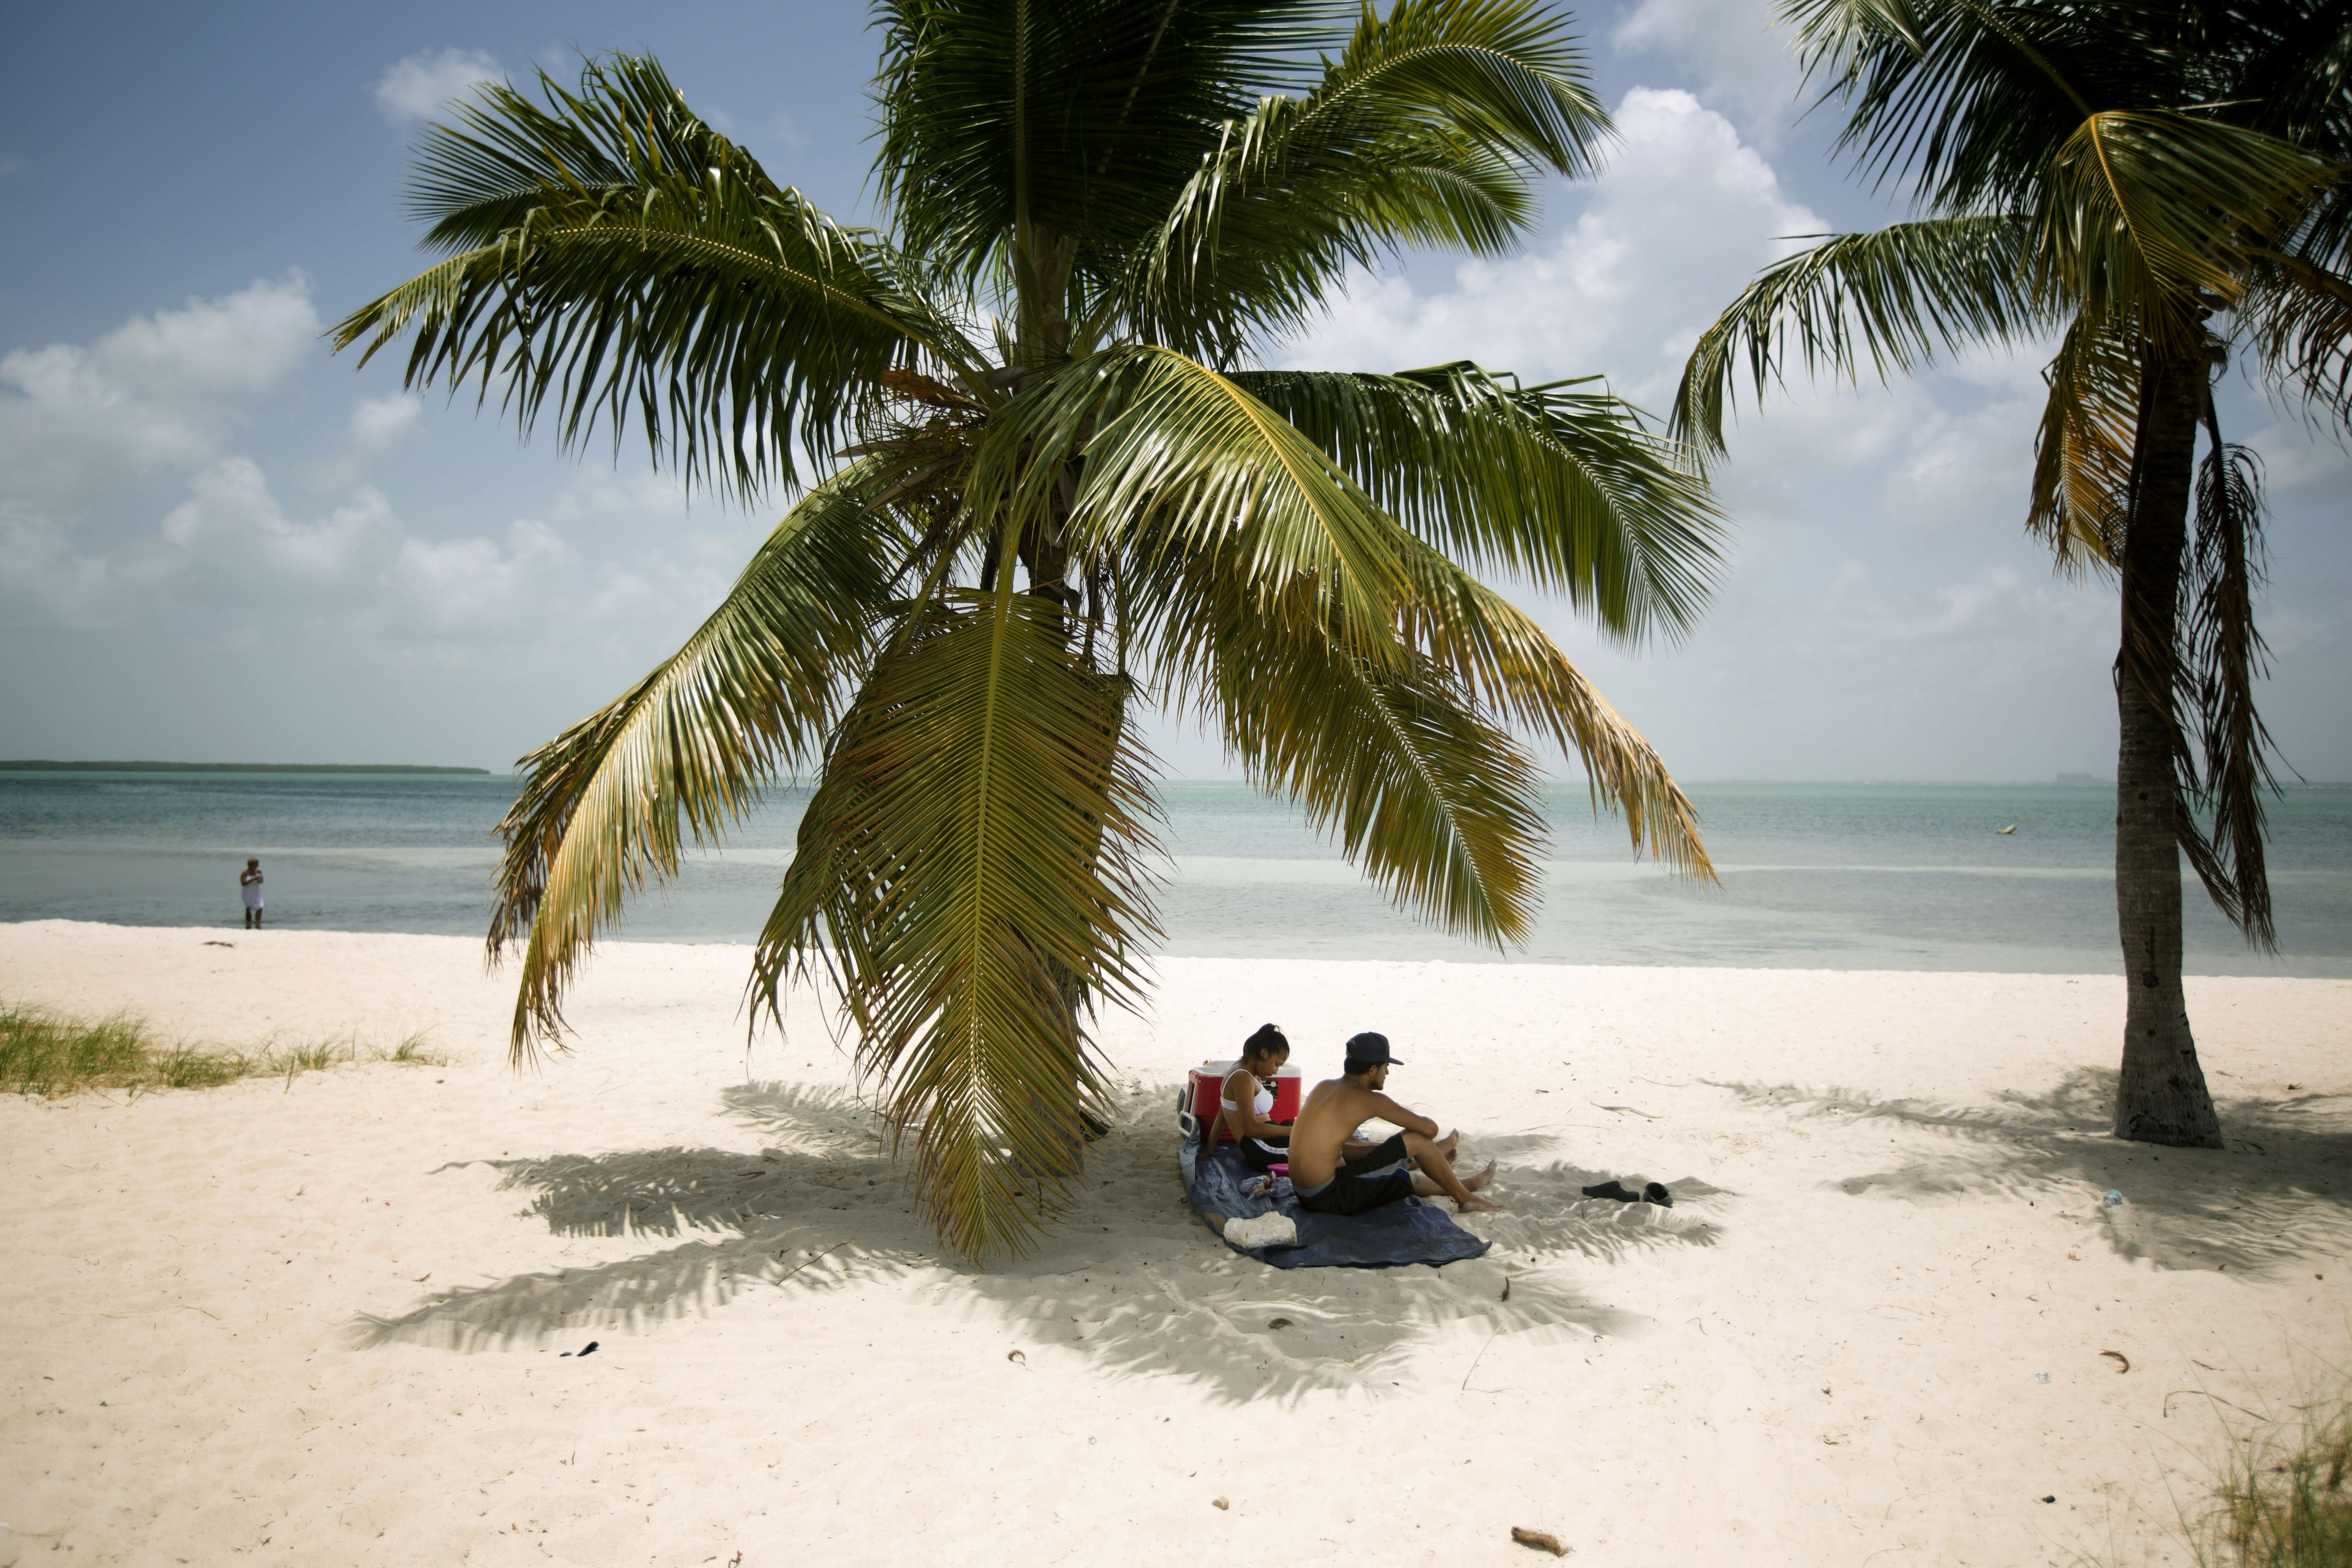 FILE - In this July 1, 2015 file photo, Marvin Hernandez, right, and Kelly Vera sit in the shade of a palm tree, in Key Biscayne, Fla. Florida's iconic palm trees are under attack from a fatal disease that turns them to dried crisps in months, with no chance for recovery once they become ill. Spread by a rice-sized, plant-hopping insect, lethal bronzing has gone from a small infestation on Florida's Gulf Coast to a nearly statewide problem in just over a decade. (AP Photo/J Pat Carter, File)